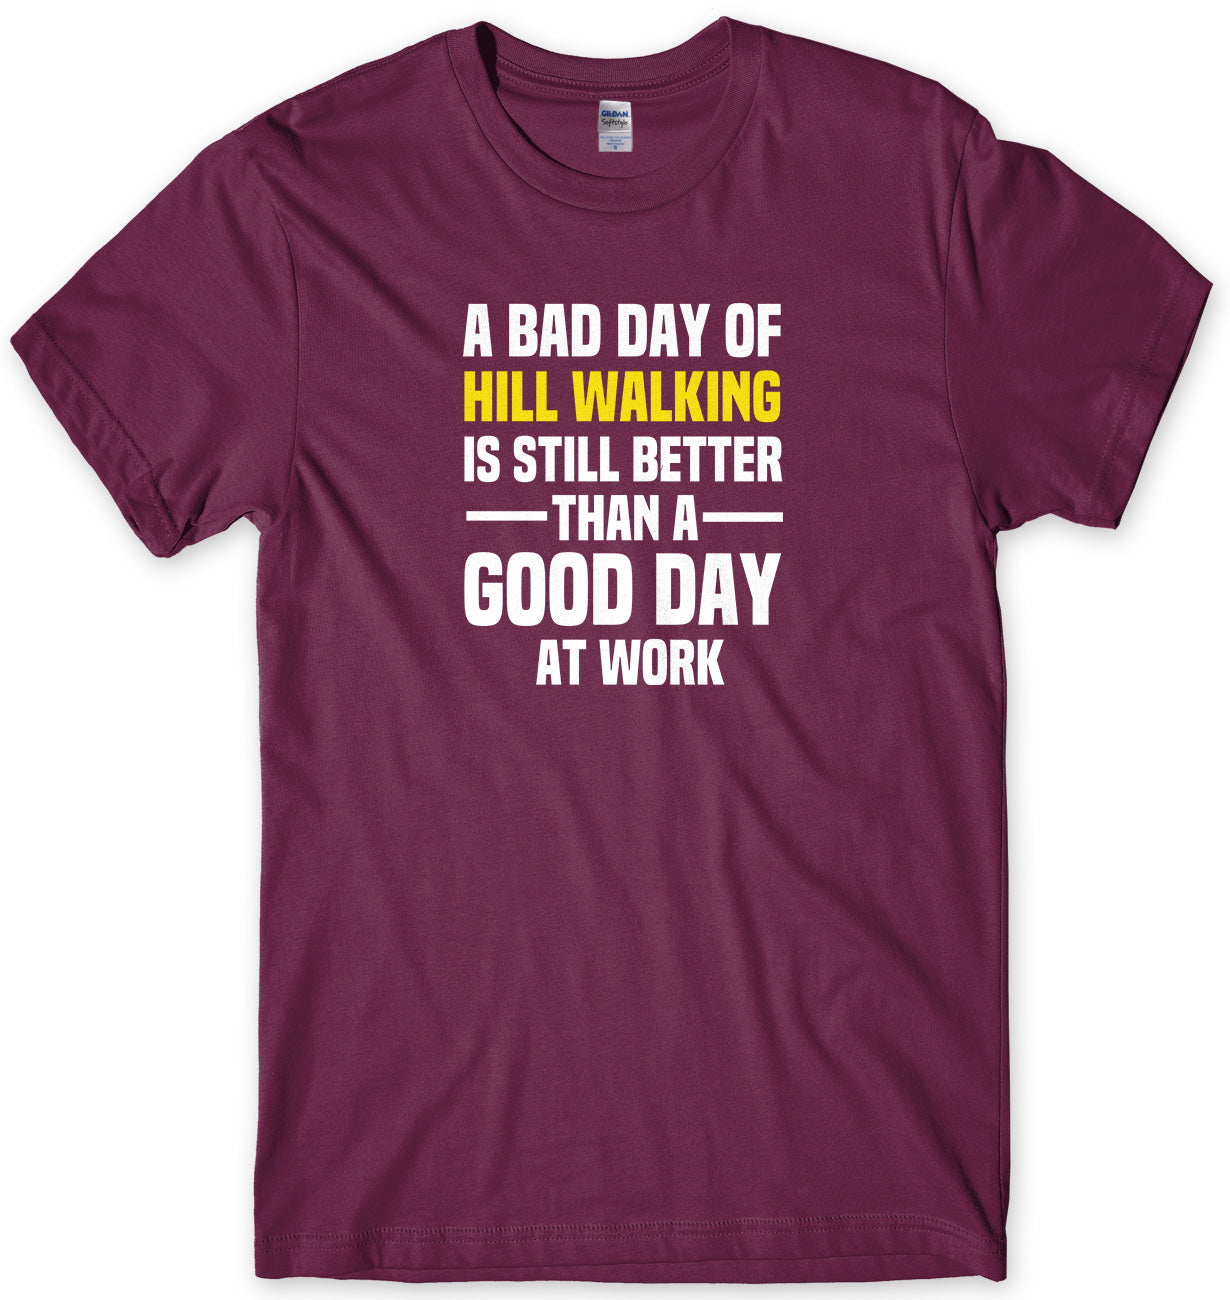 A BAD DAY OF HILL WALKING IS STILL BETTER THAN A GOOD DAY AT WORK MENS FUNNY SLOGAN UNISEX T-SHIRT - StreetSide Surgeons